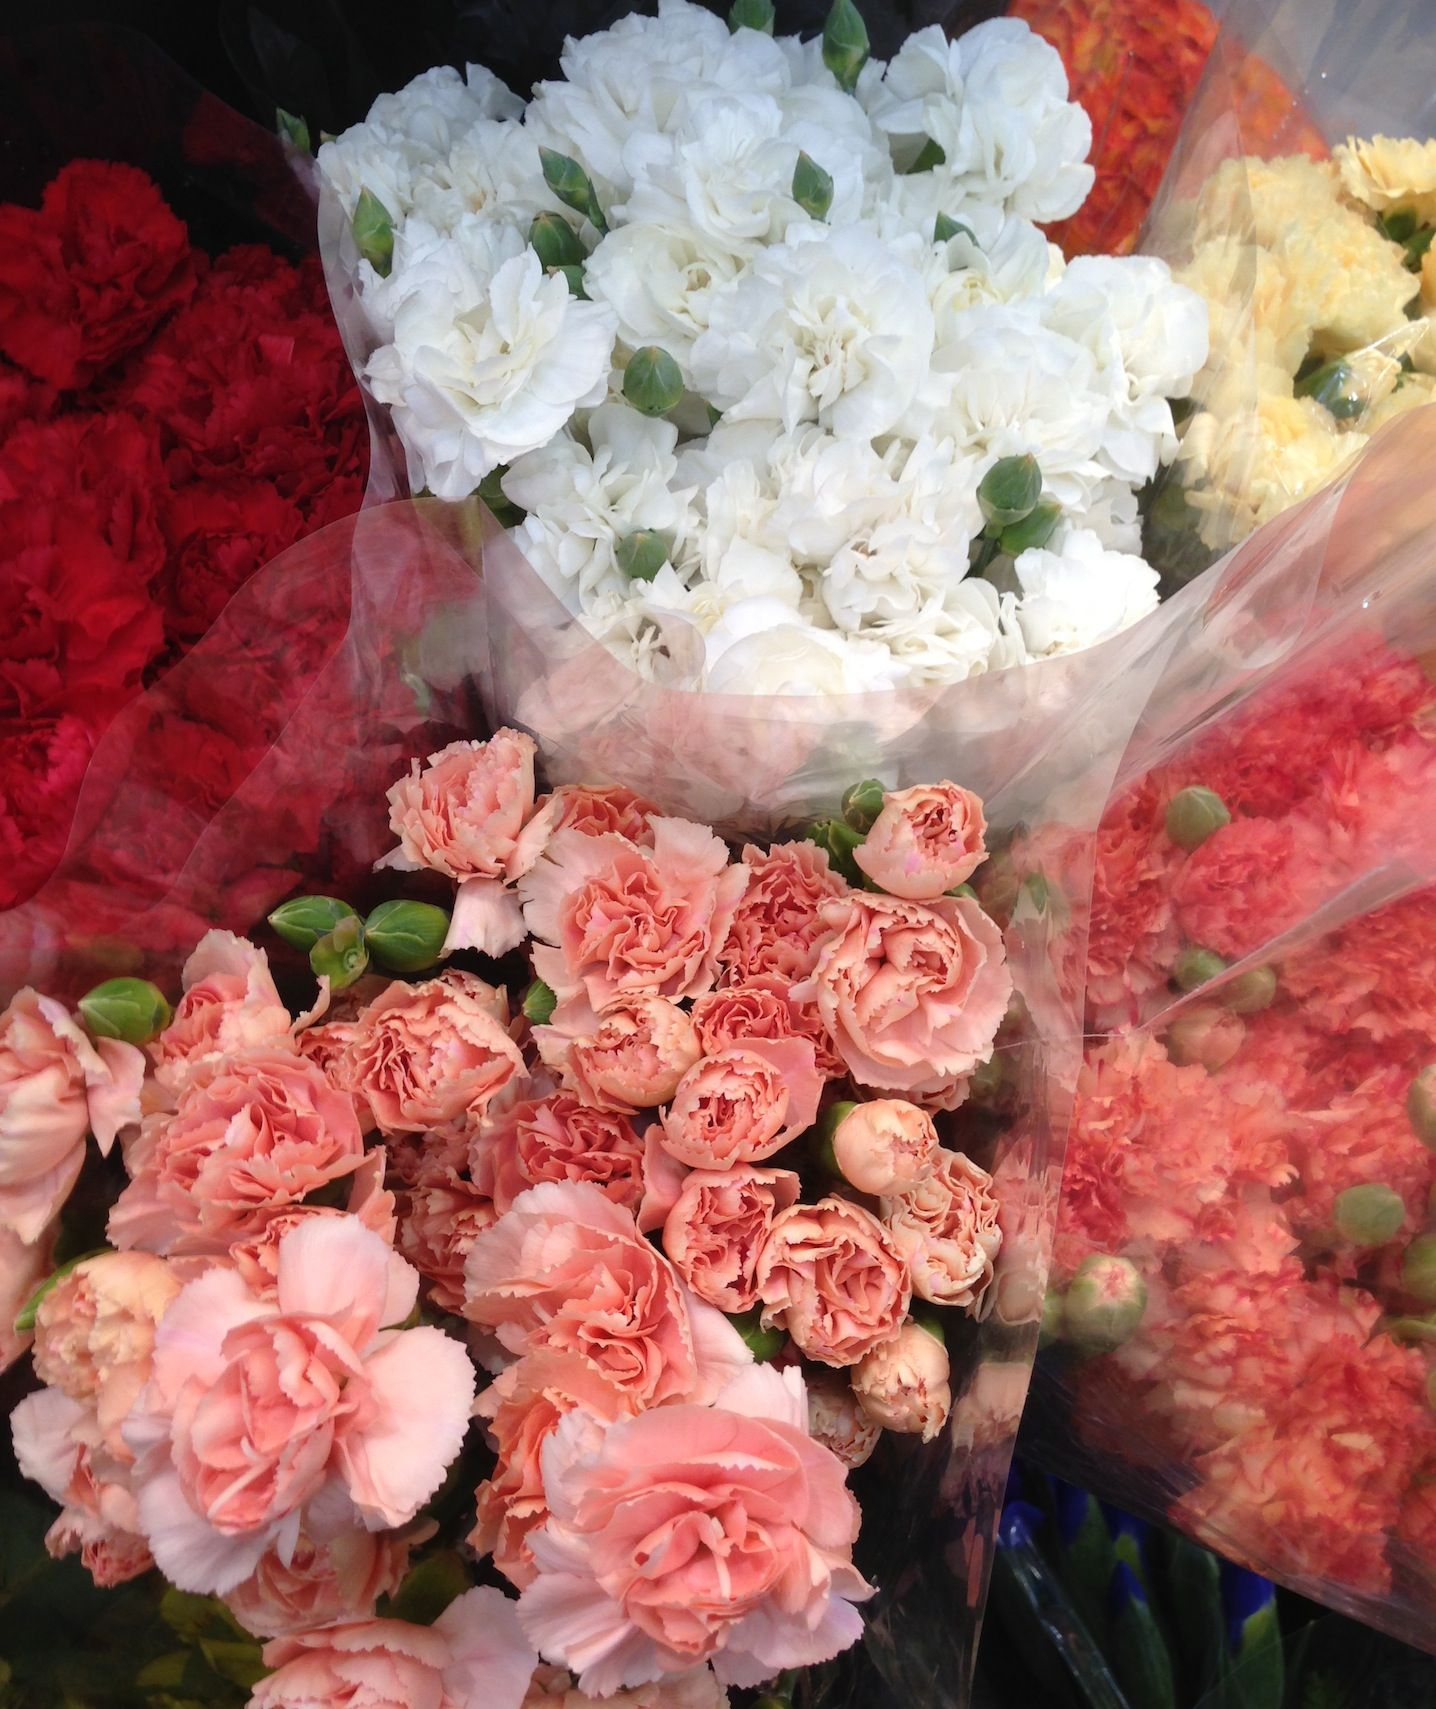 Carnations in all colors at louisville costco 899 for a packed carnations in all colors at louisville costco 899 for a packed bouquet izmirmasajfo Images